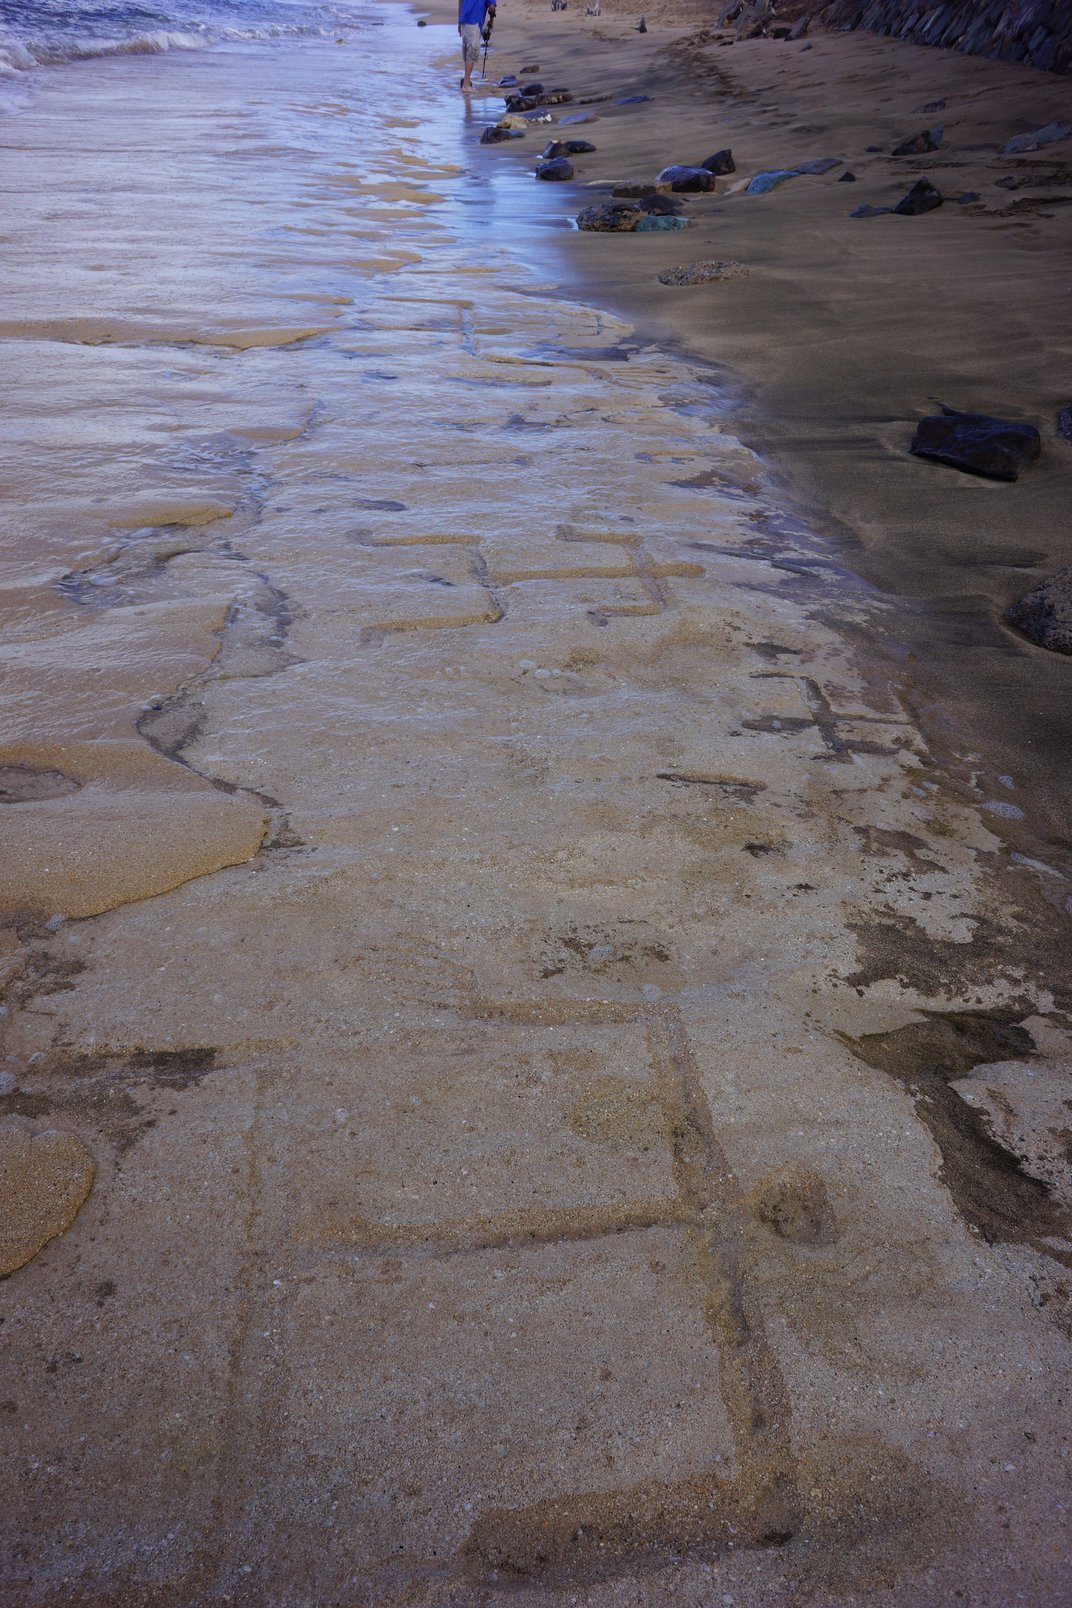 Tourists in Hawaii Accidentally Discovered Ancient Petroglyphs